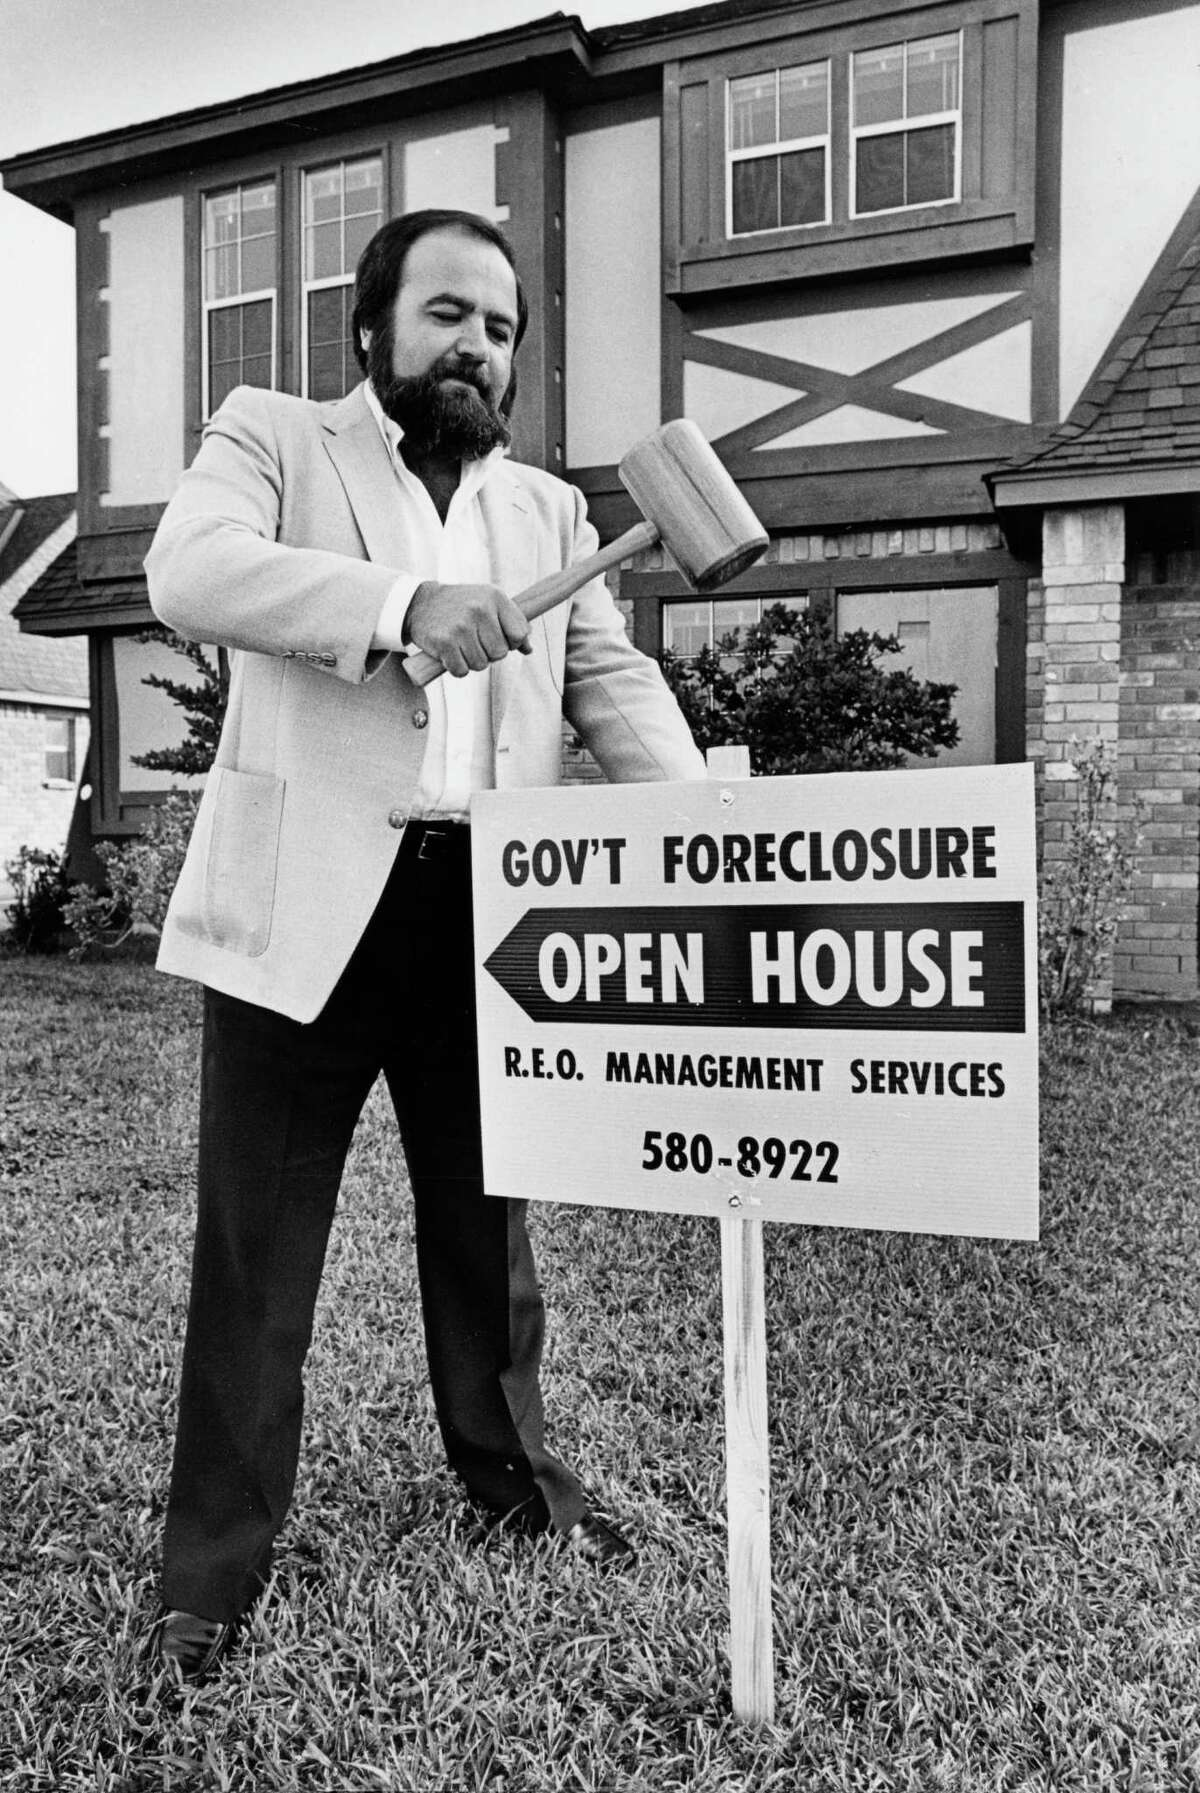 February 7, 1986: Harry Bradley of R.E.Q. Management Services installs a foreclosure sign on a residential property in preparation for a VA foreclosure auction taking place Feb. 8, 1986 in Houston.